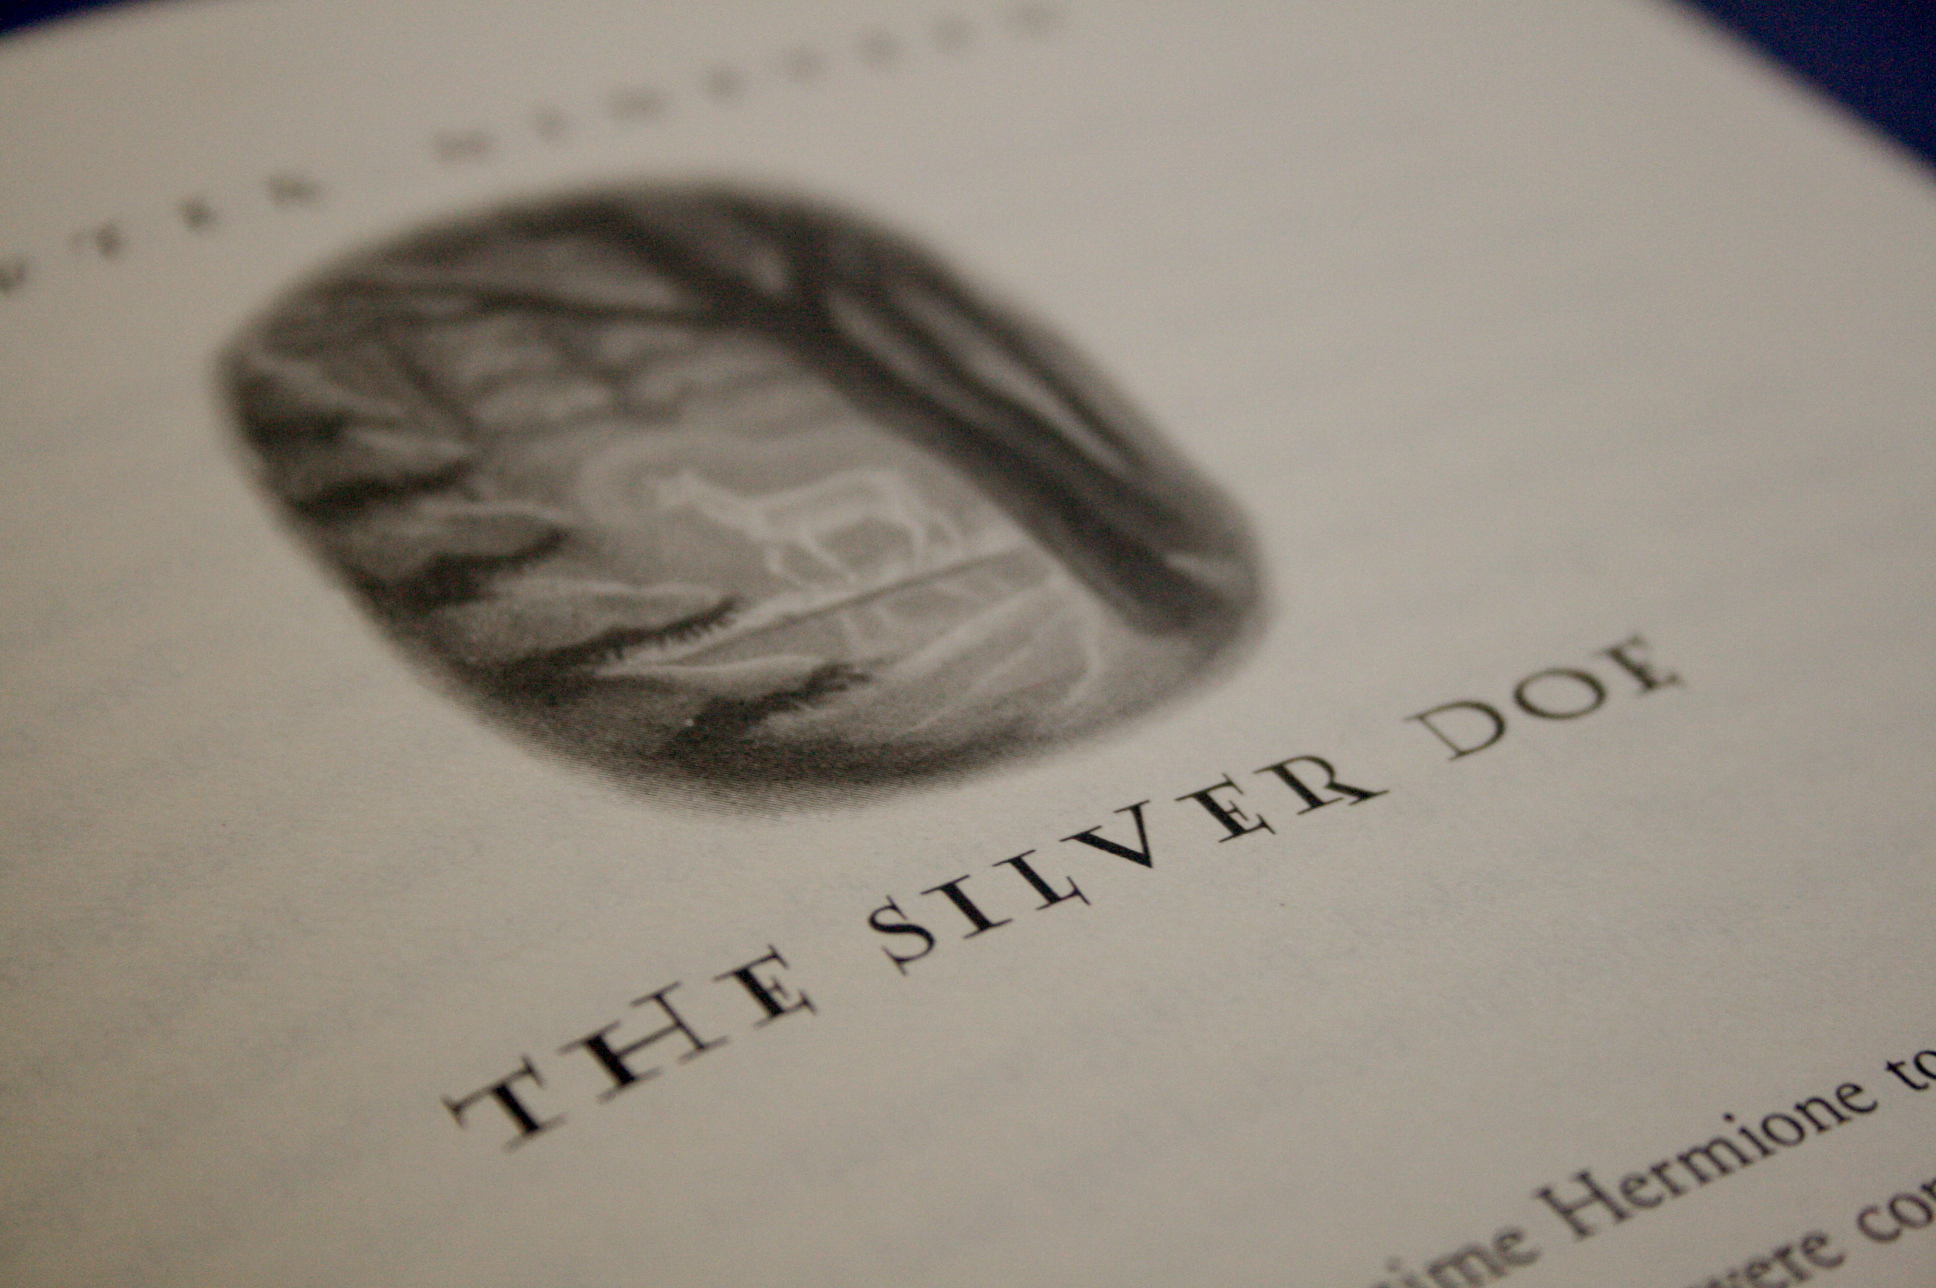 the silver doe chapter from harry potter